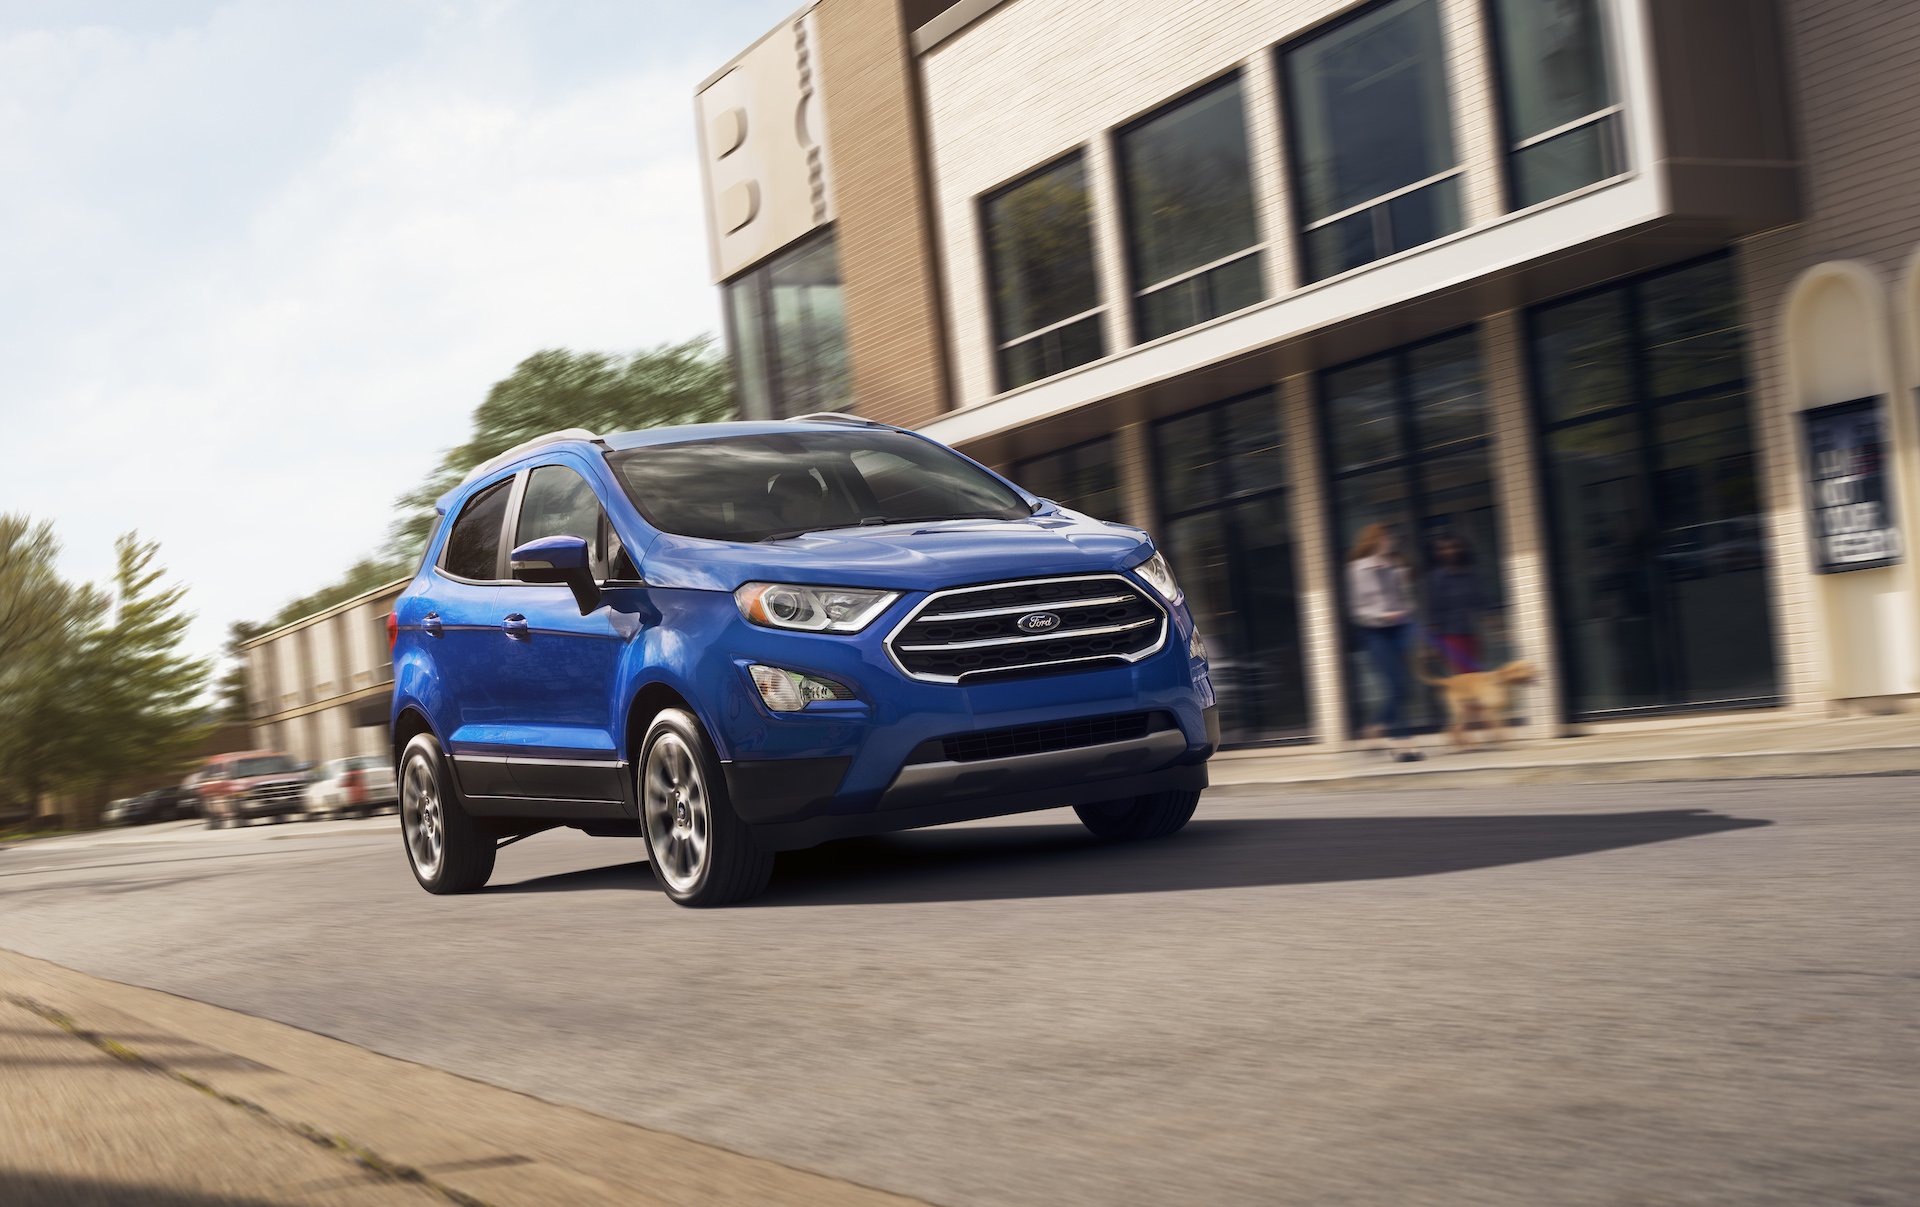 2020 Ford Ecosport Review.2020 Ford Ecosport Review Ratings Specs Prices And